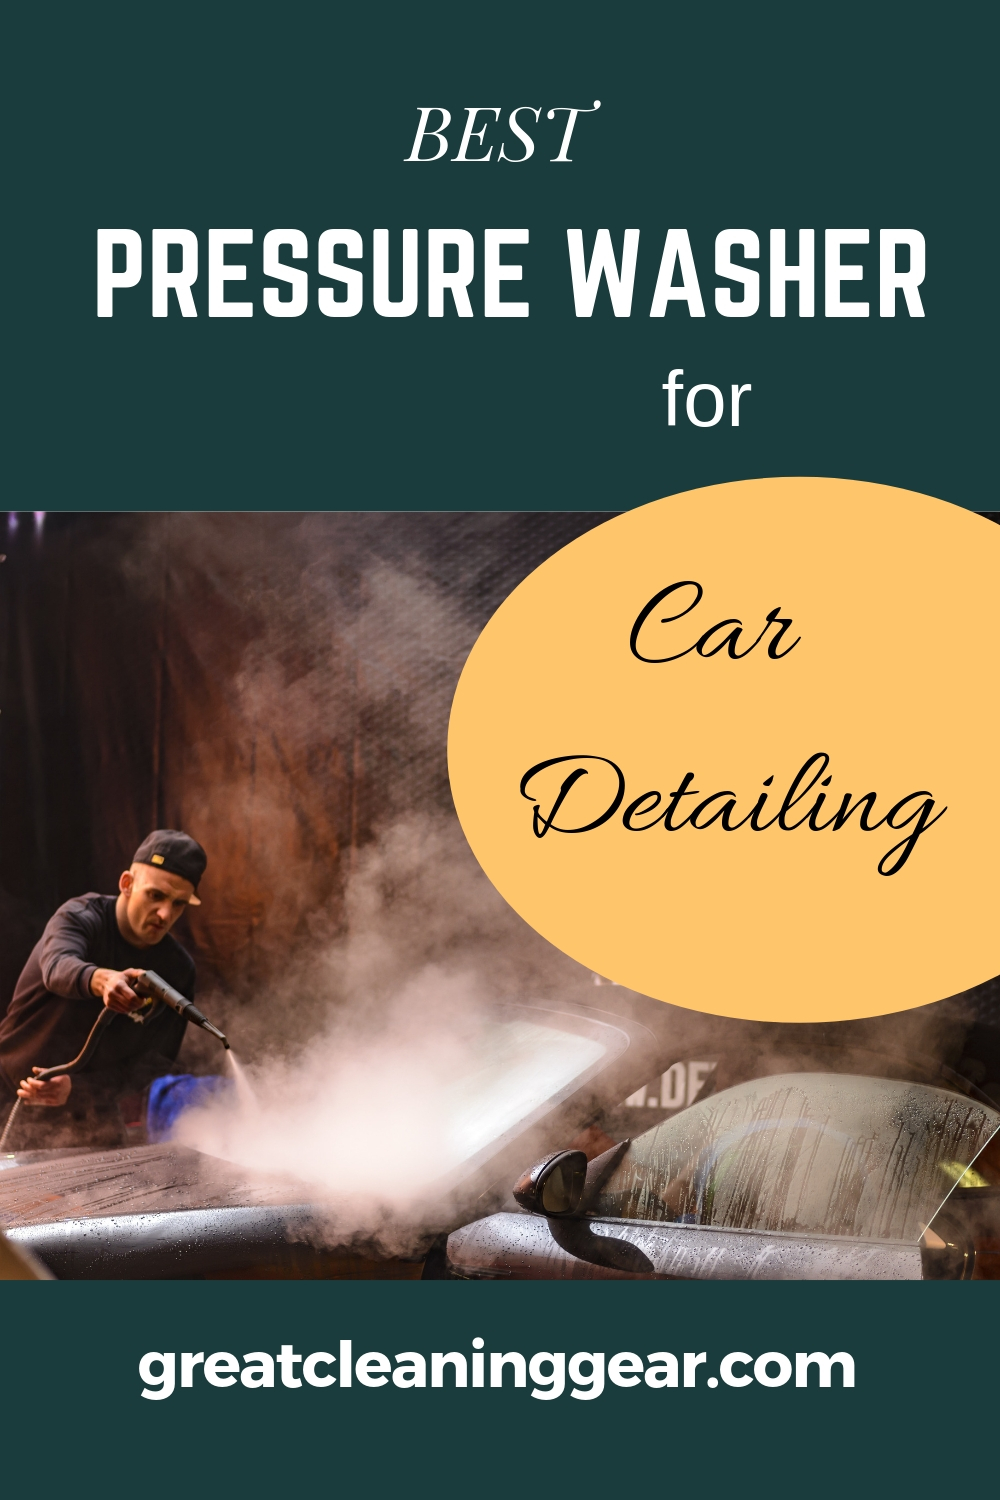 Best Pressure Washer For Car Detailing